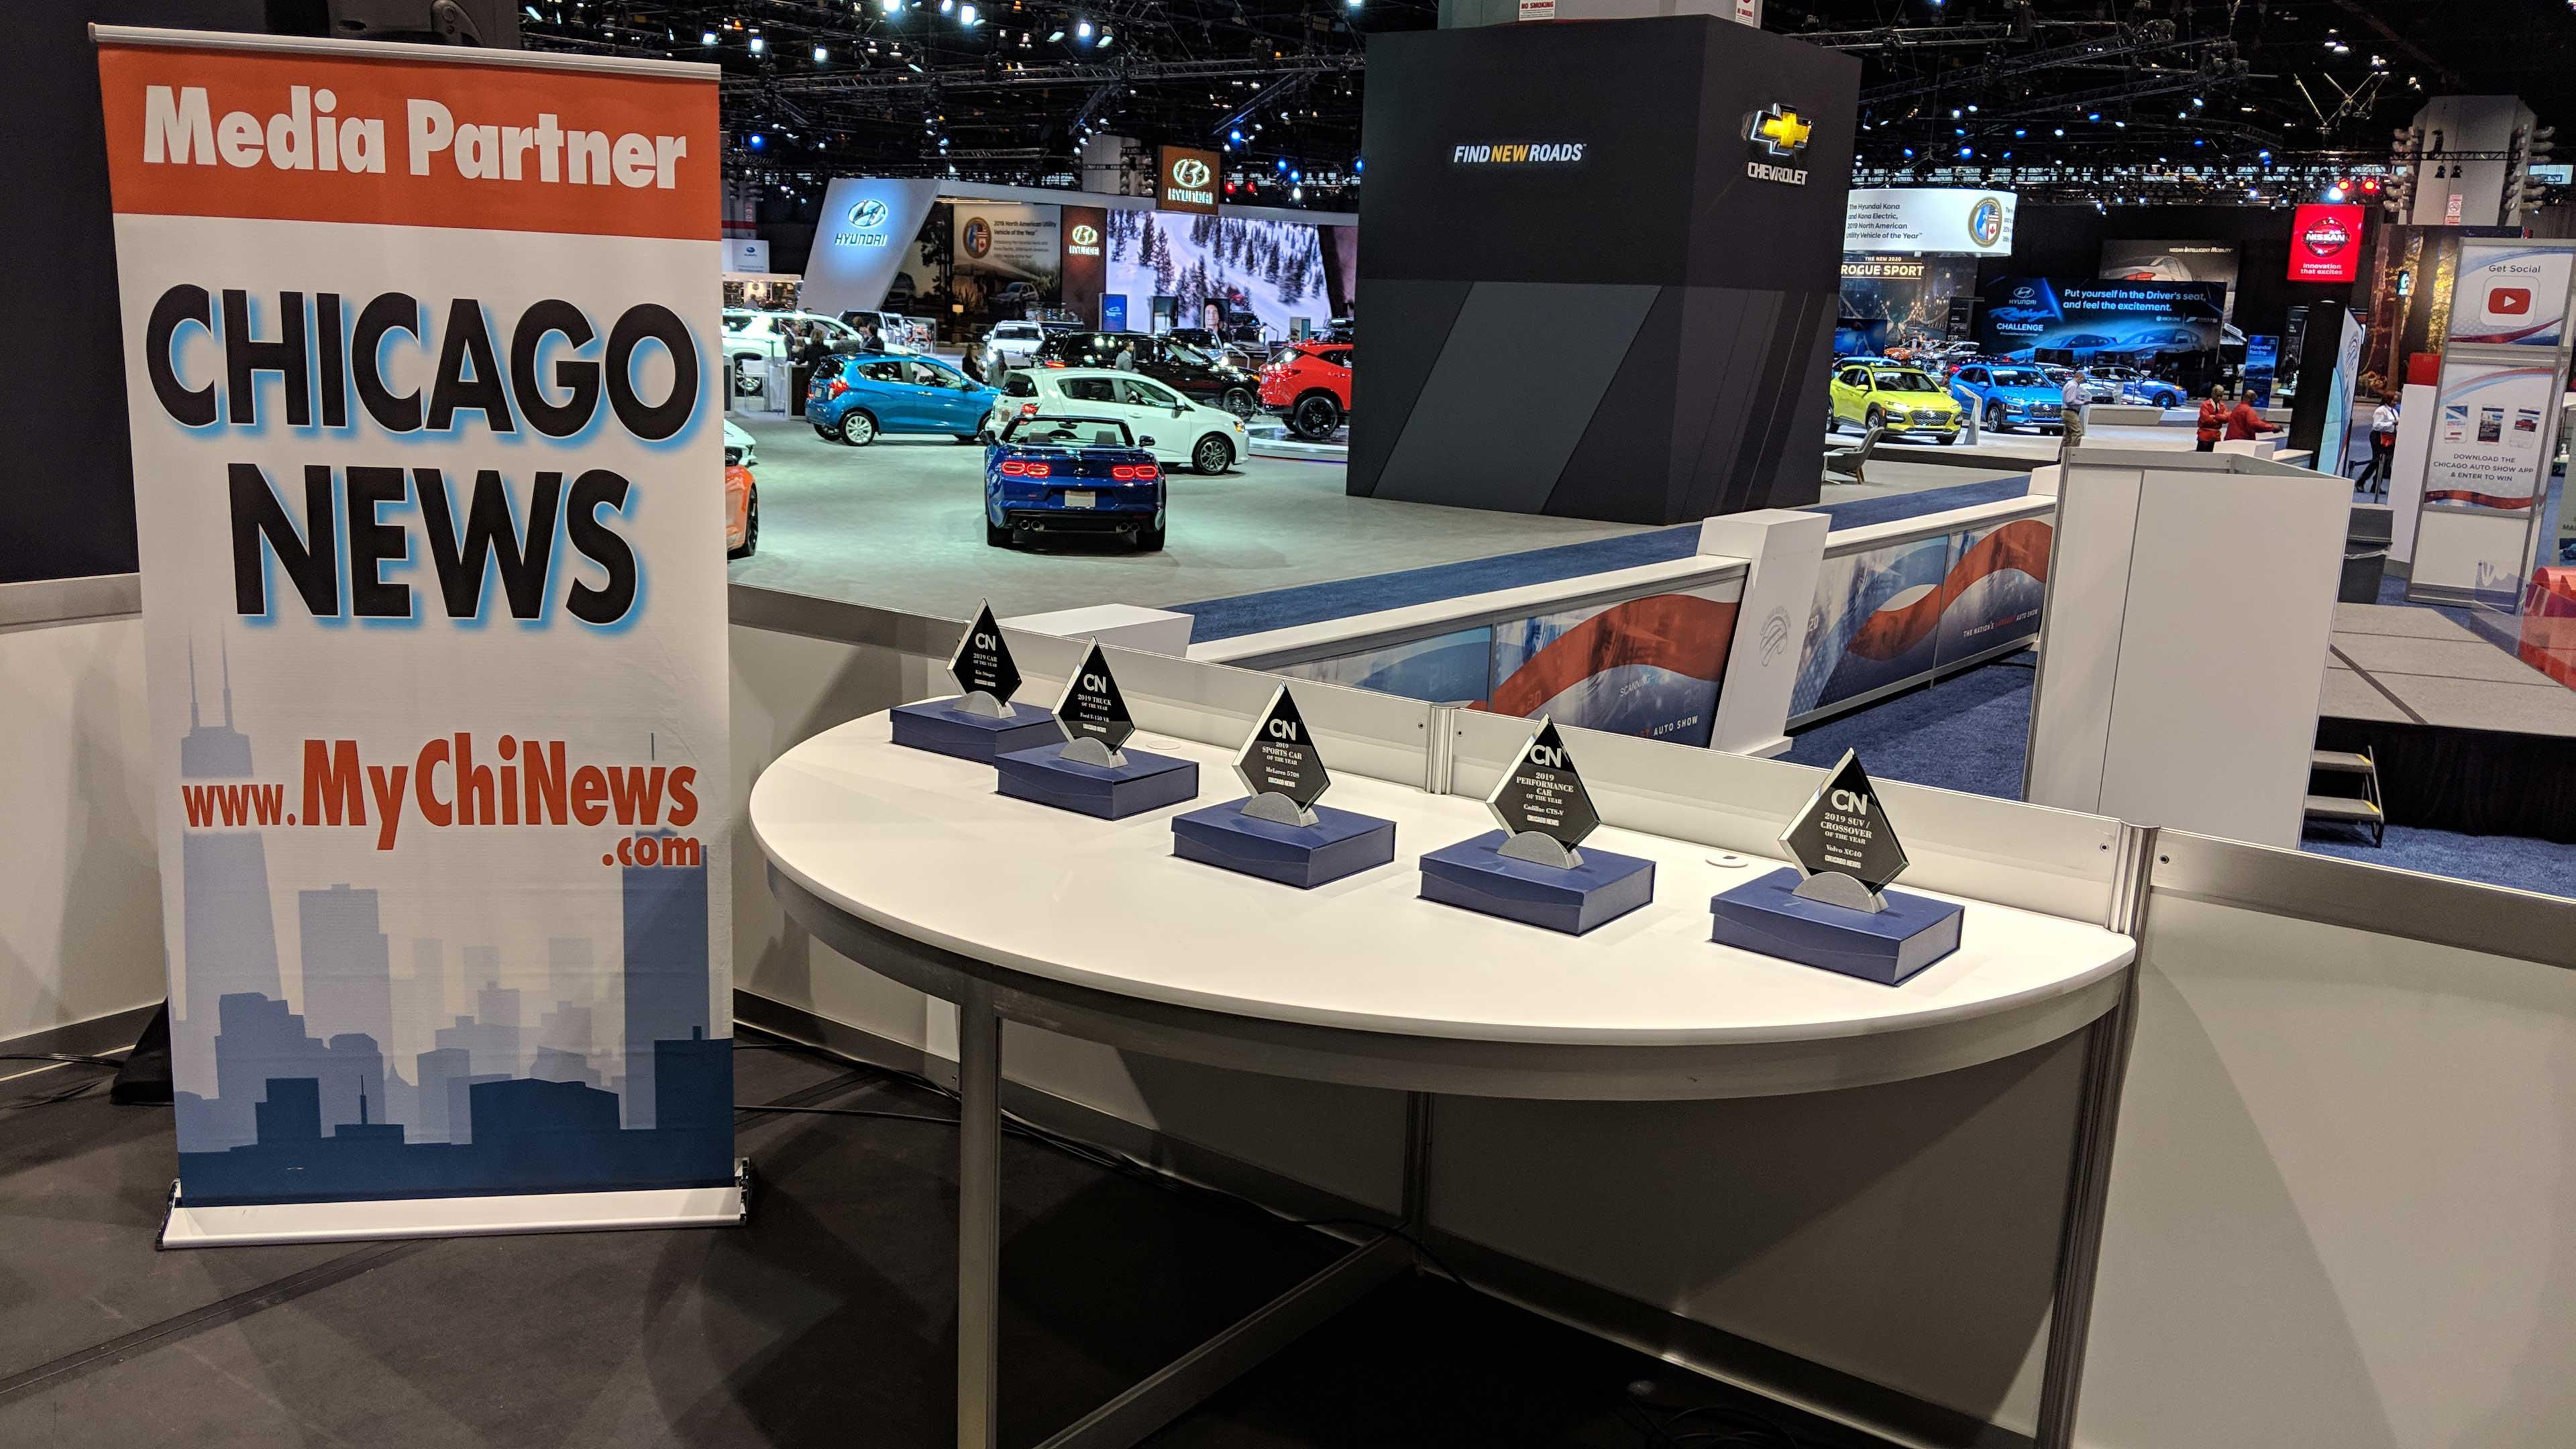 Chicago News presented awards for Cars of the Year at the 2019 Chicago Auto Show